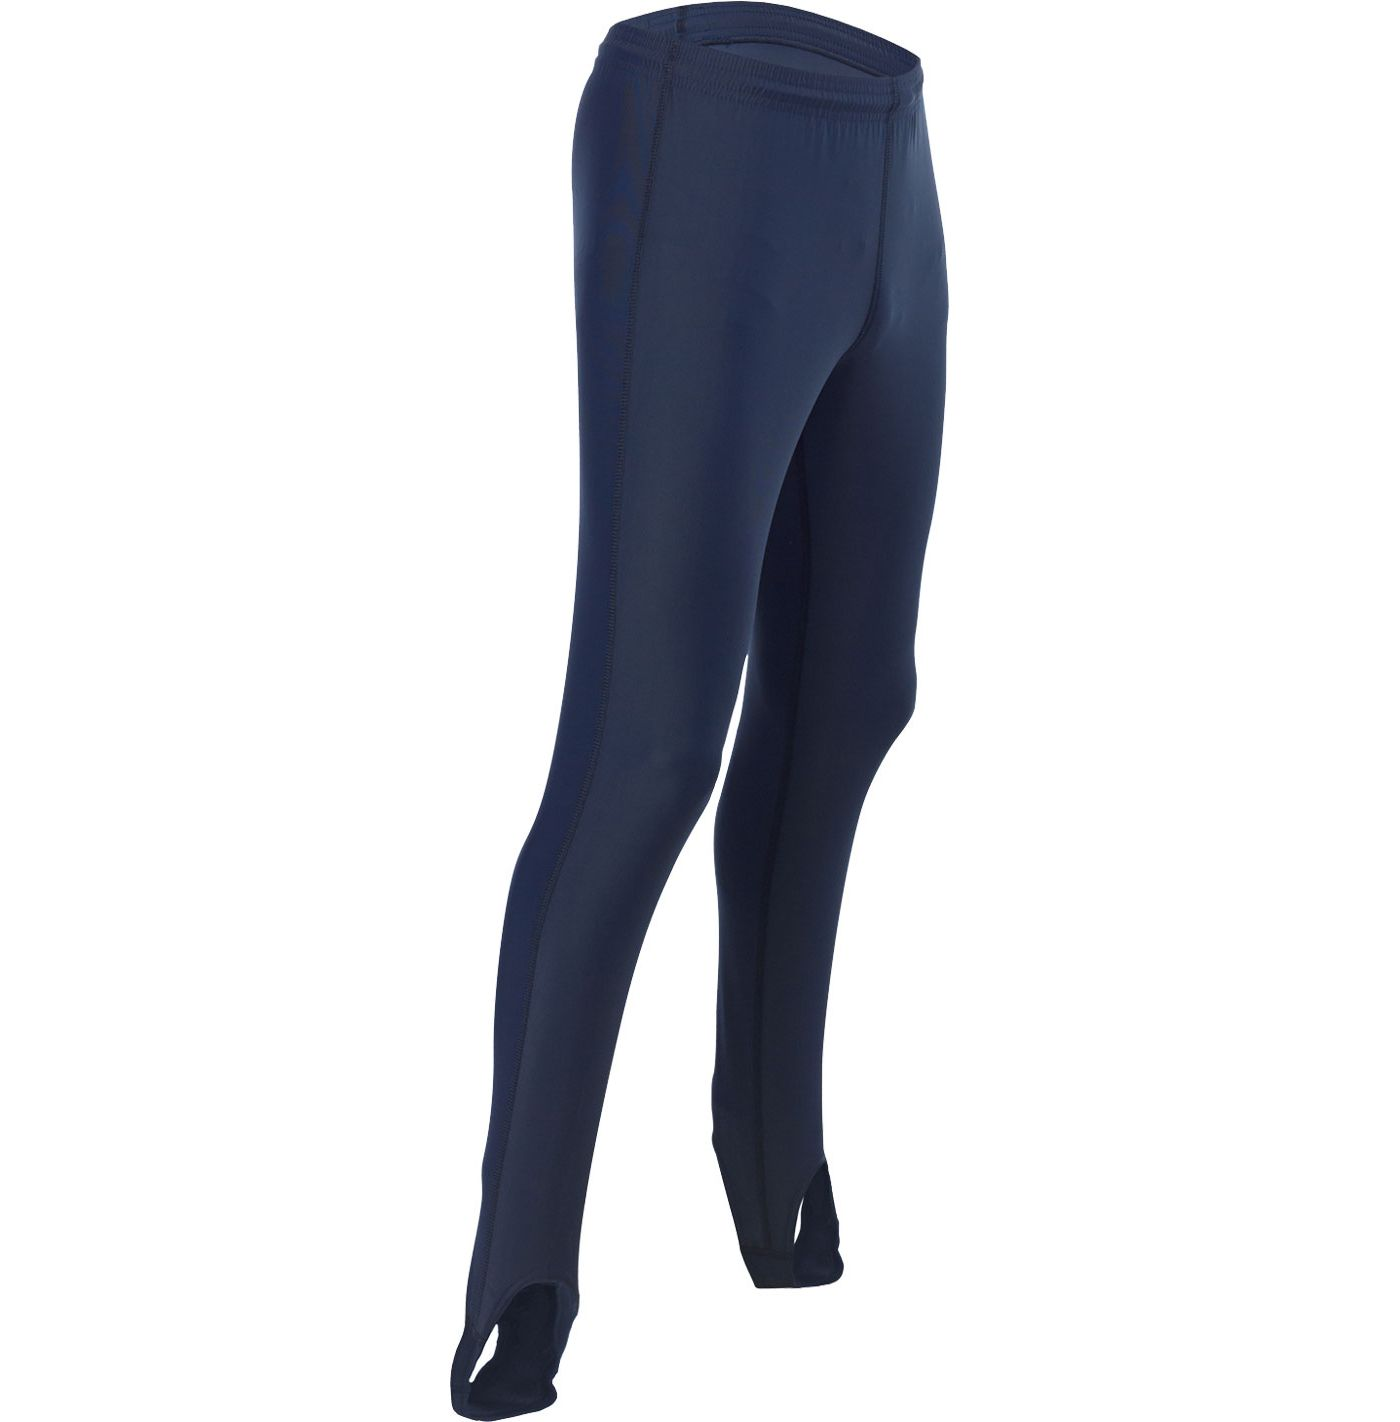 Cliff Keen Adult The Force Compression Wrestling Tights